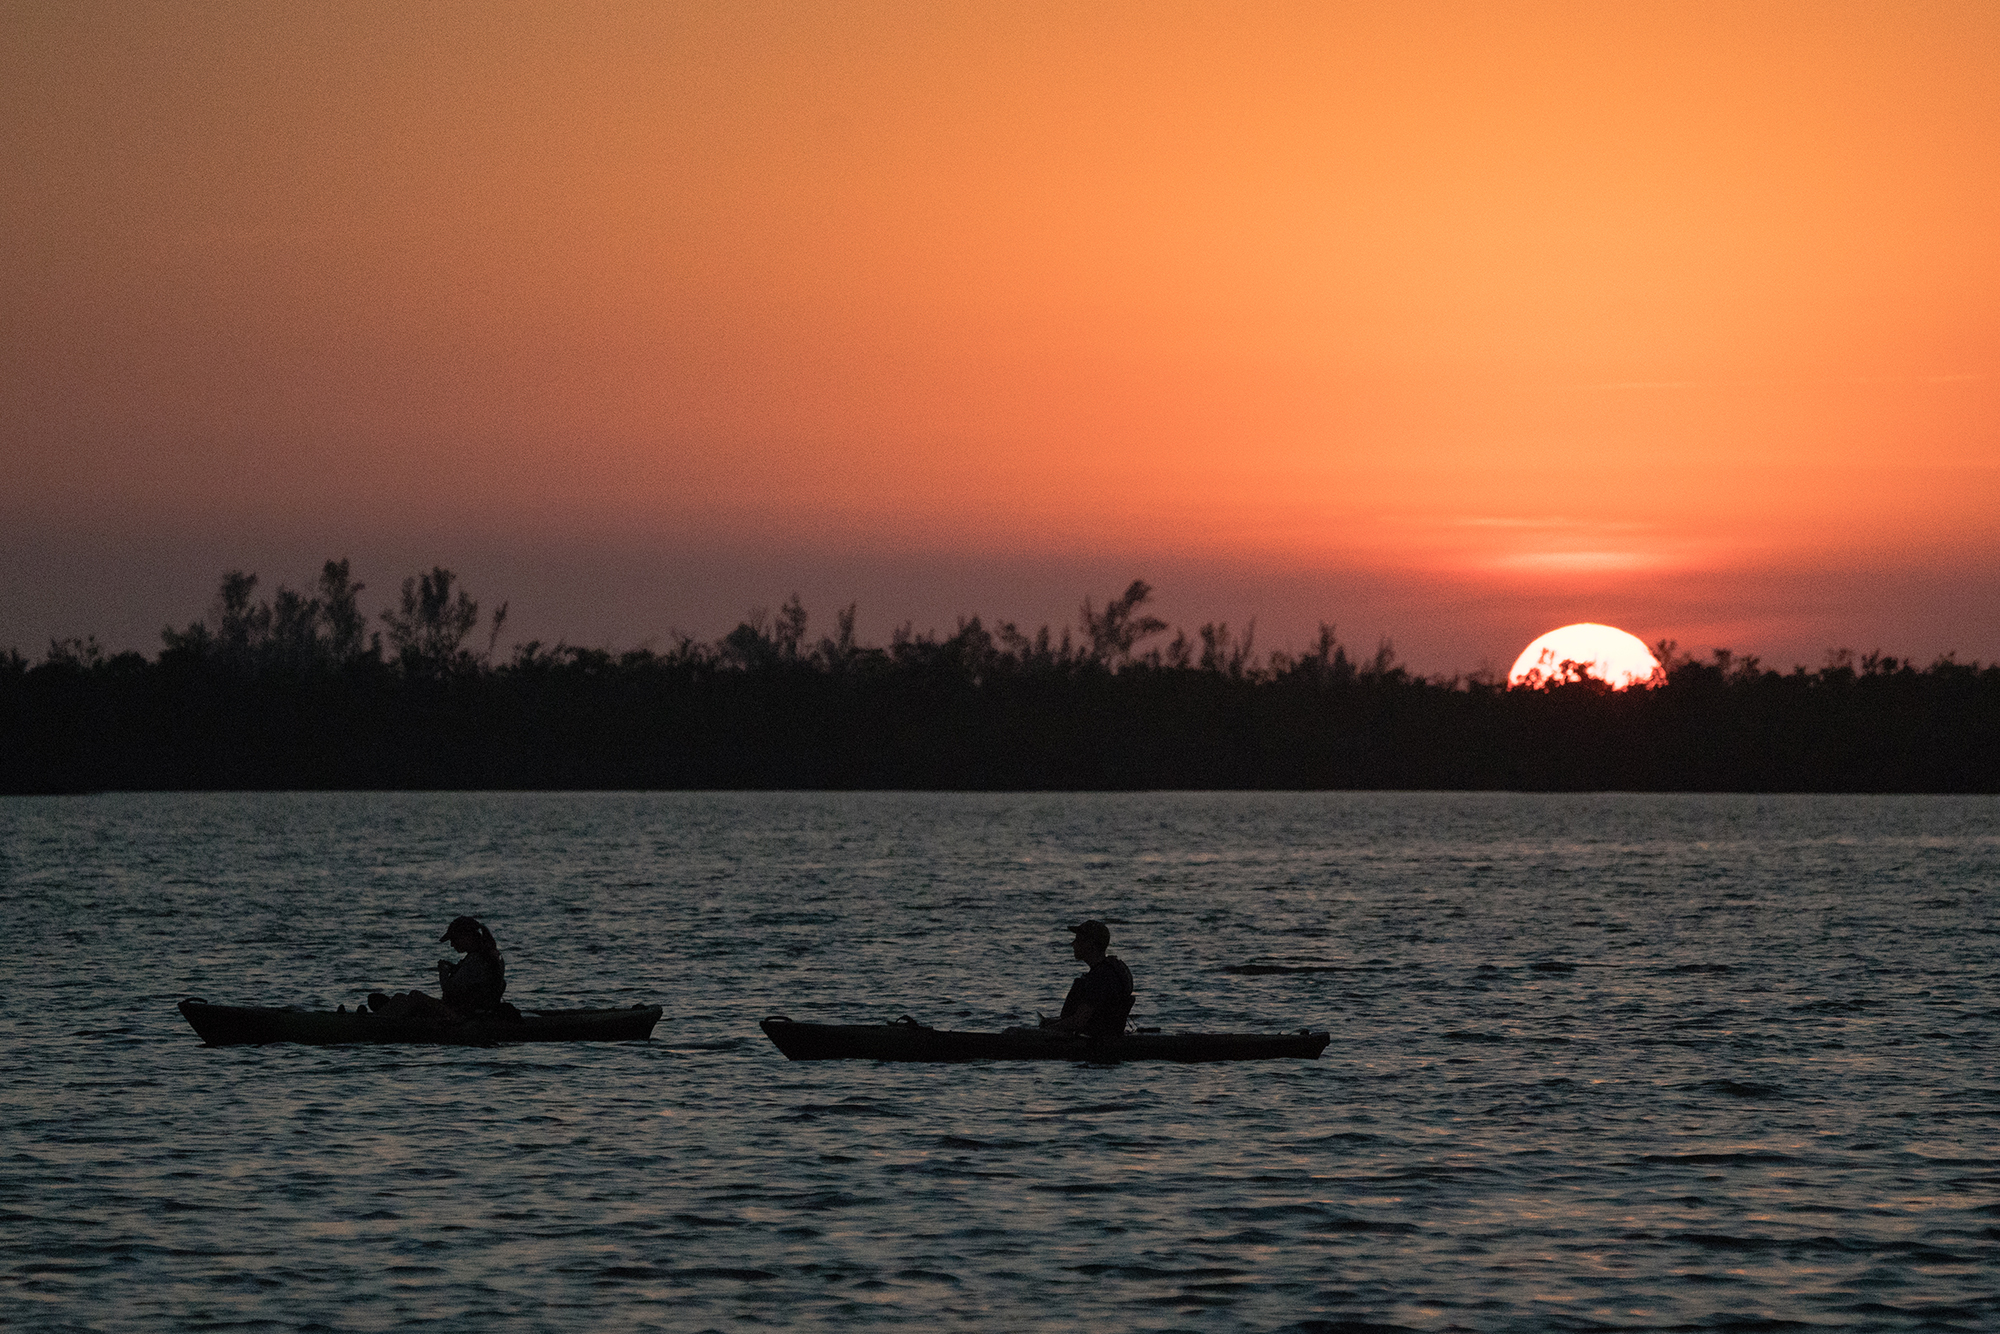 #orange, #sunset, #rookerybay, #florida, #swflorida, #kayak, #dayisdone, #nature, #landscape, #humanelement